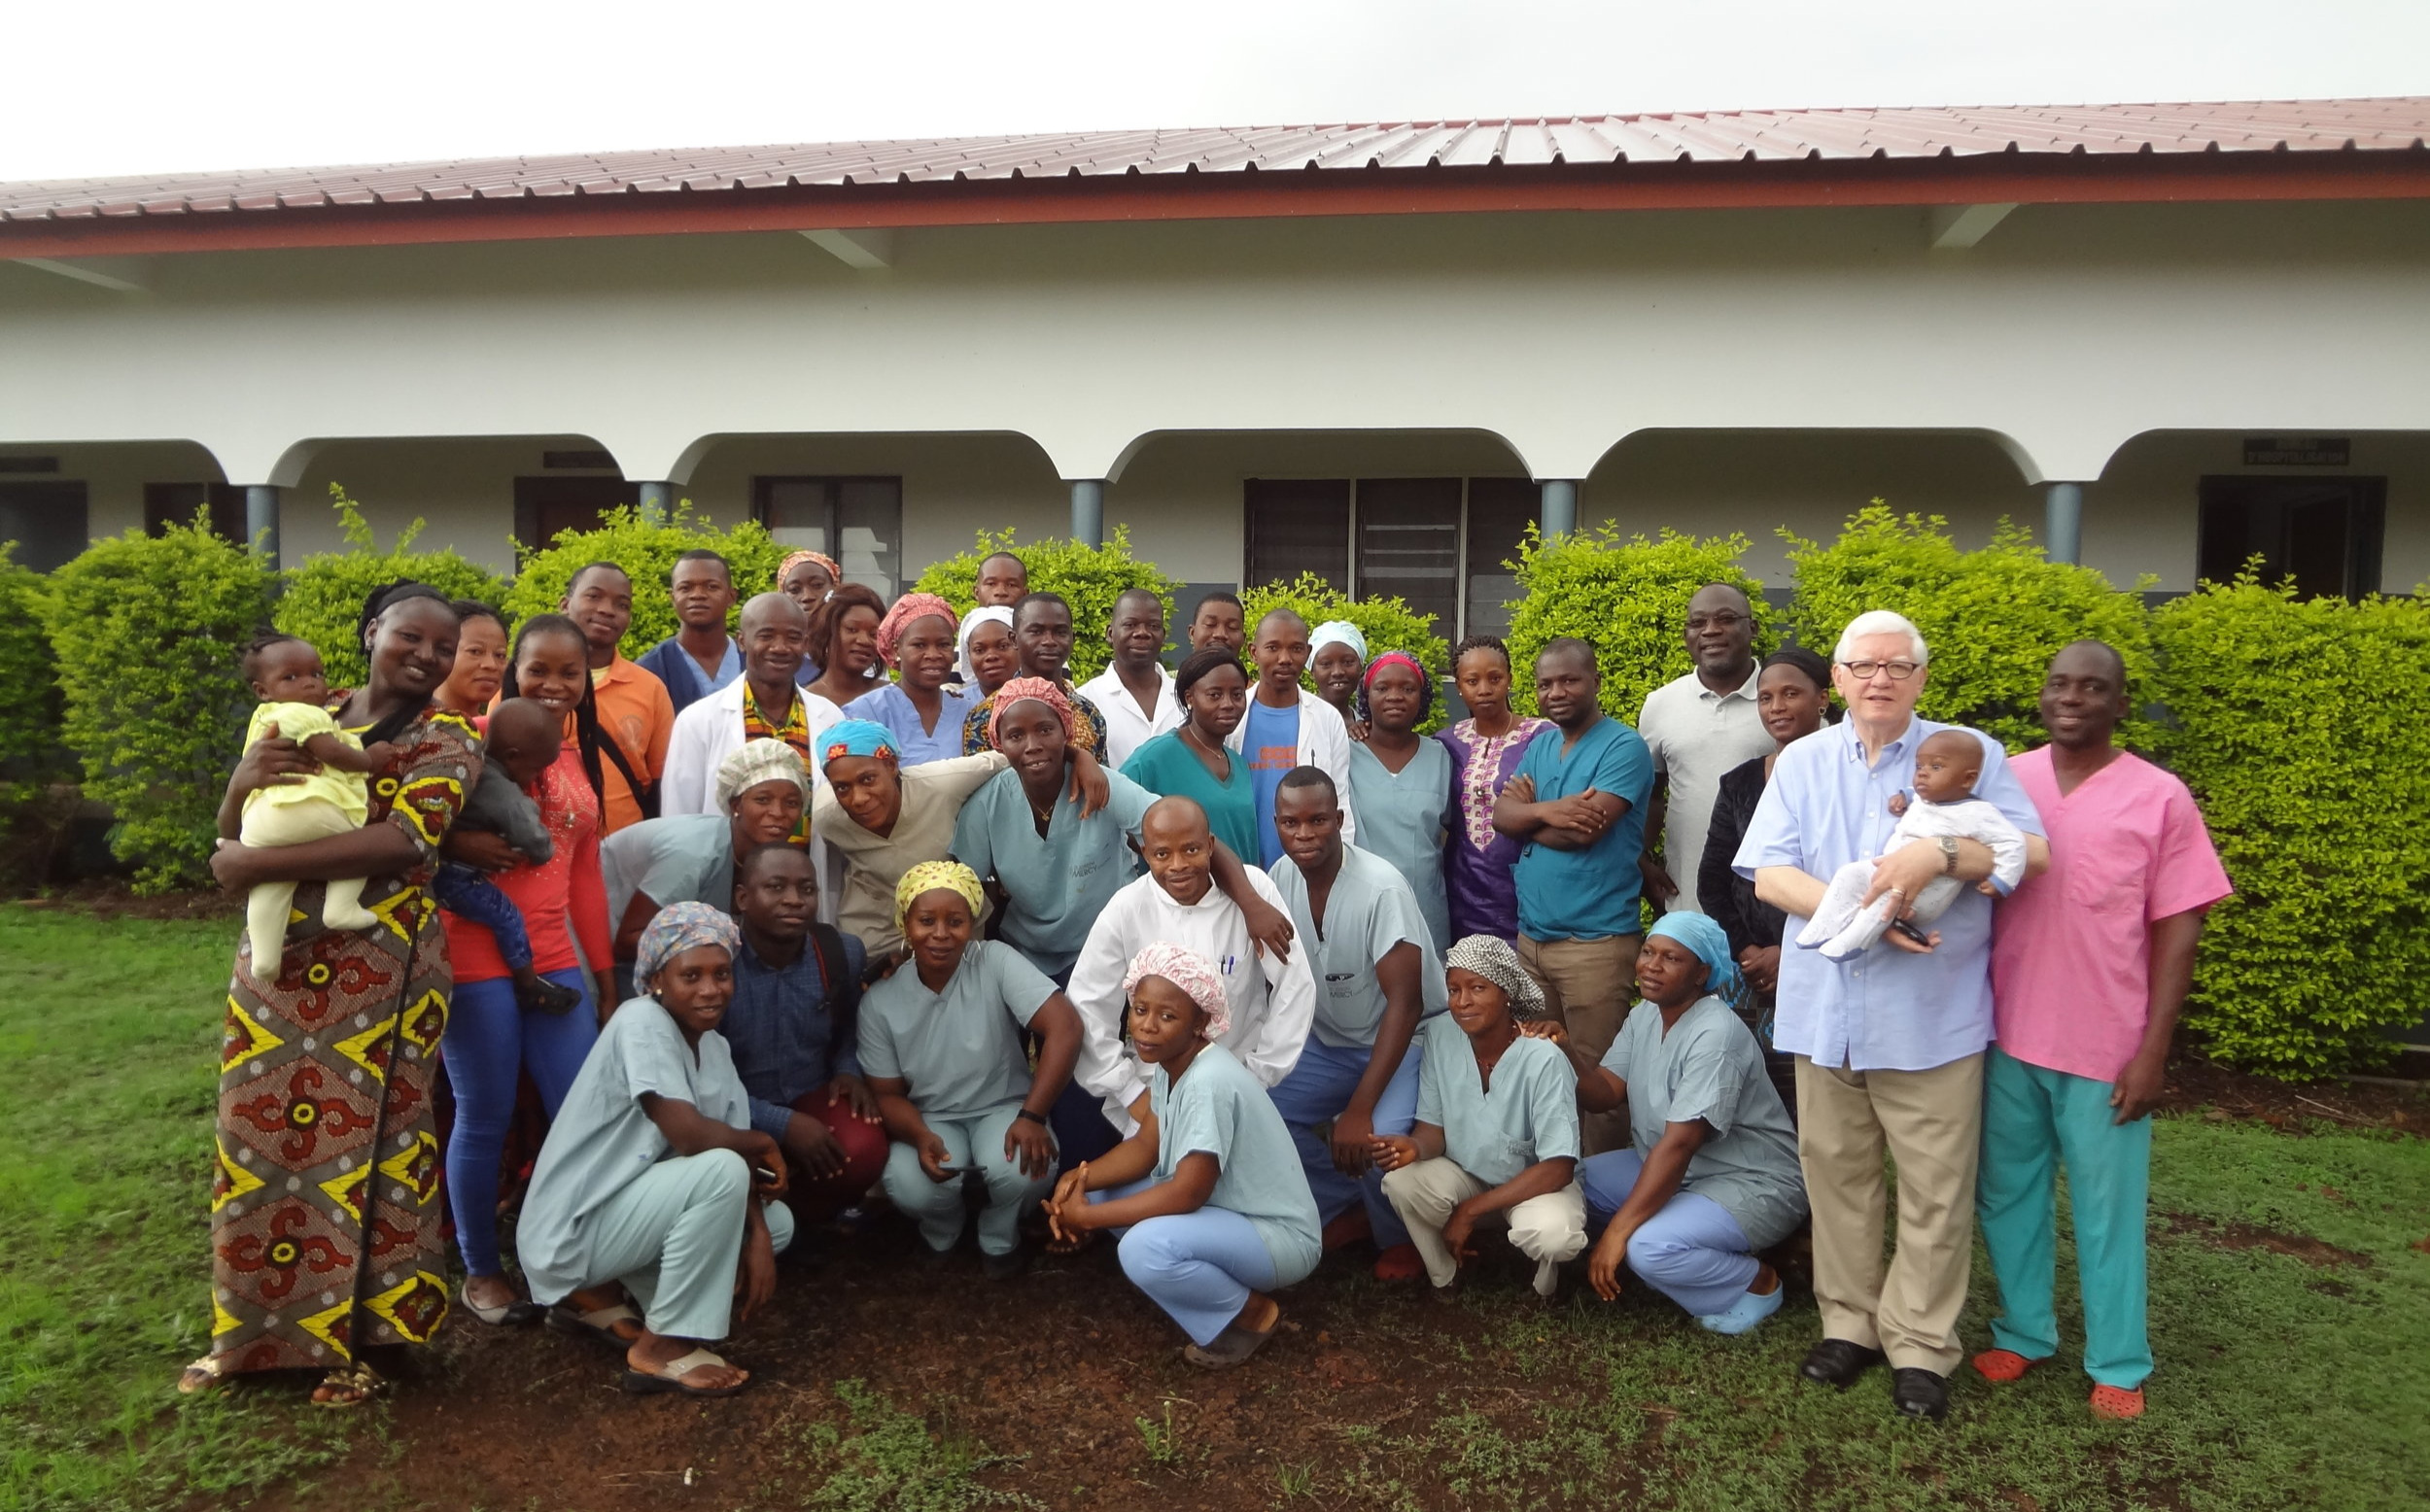 TR provided administrative and technical support to Compassion Hospital in Guinea, West Africa in June 2019; photo of TR with the hospital staff